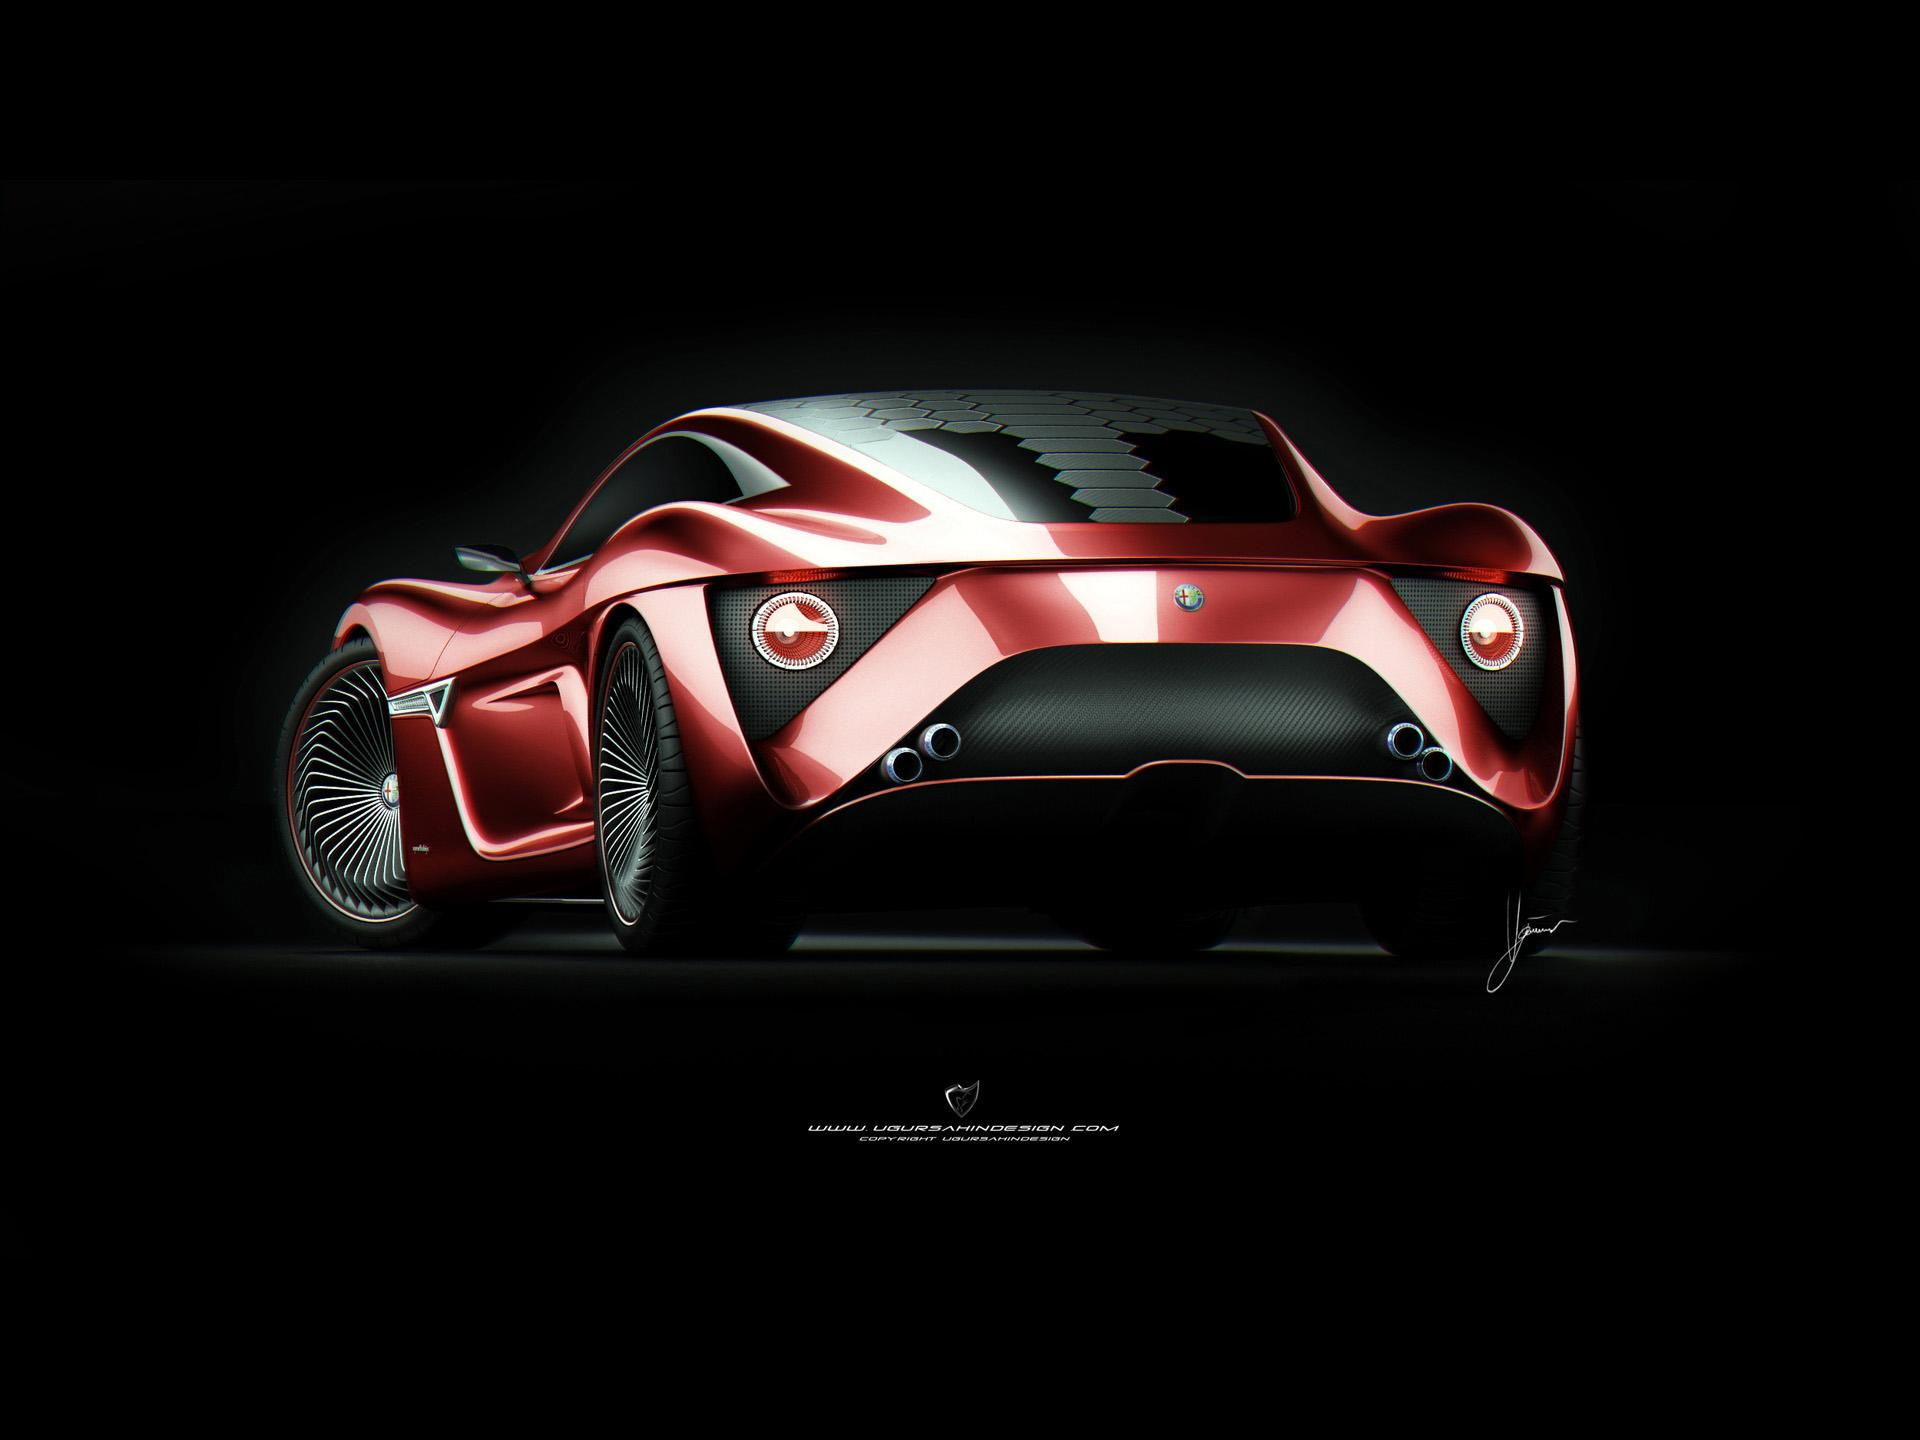 1920x1440 - Alfa Romeo 12C GTS Wallpapers 25